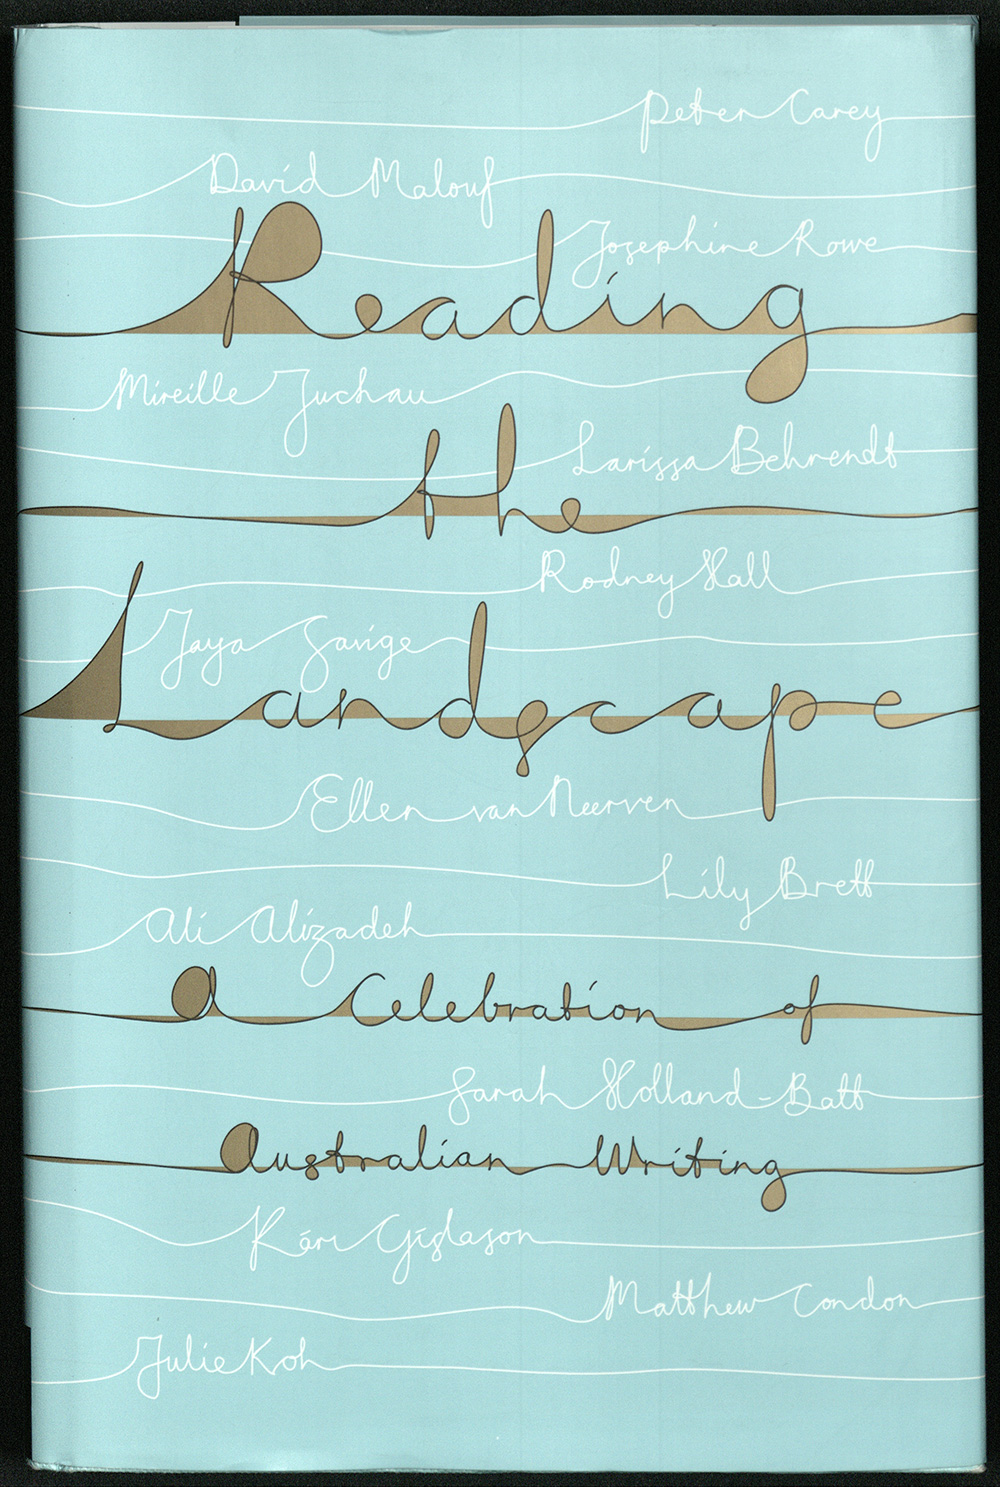 Book cover of 'Reading the Landscape'.